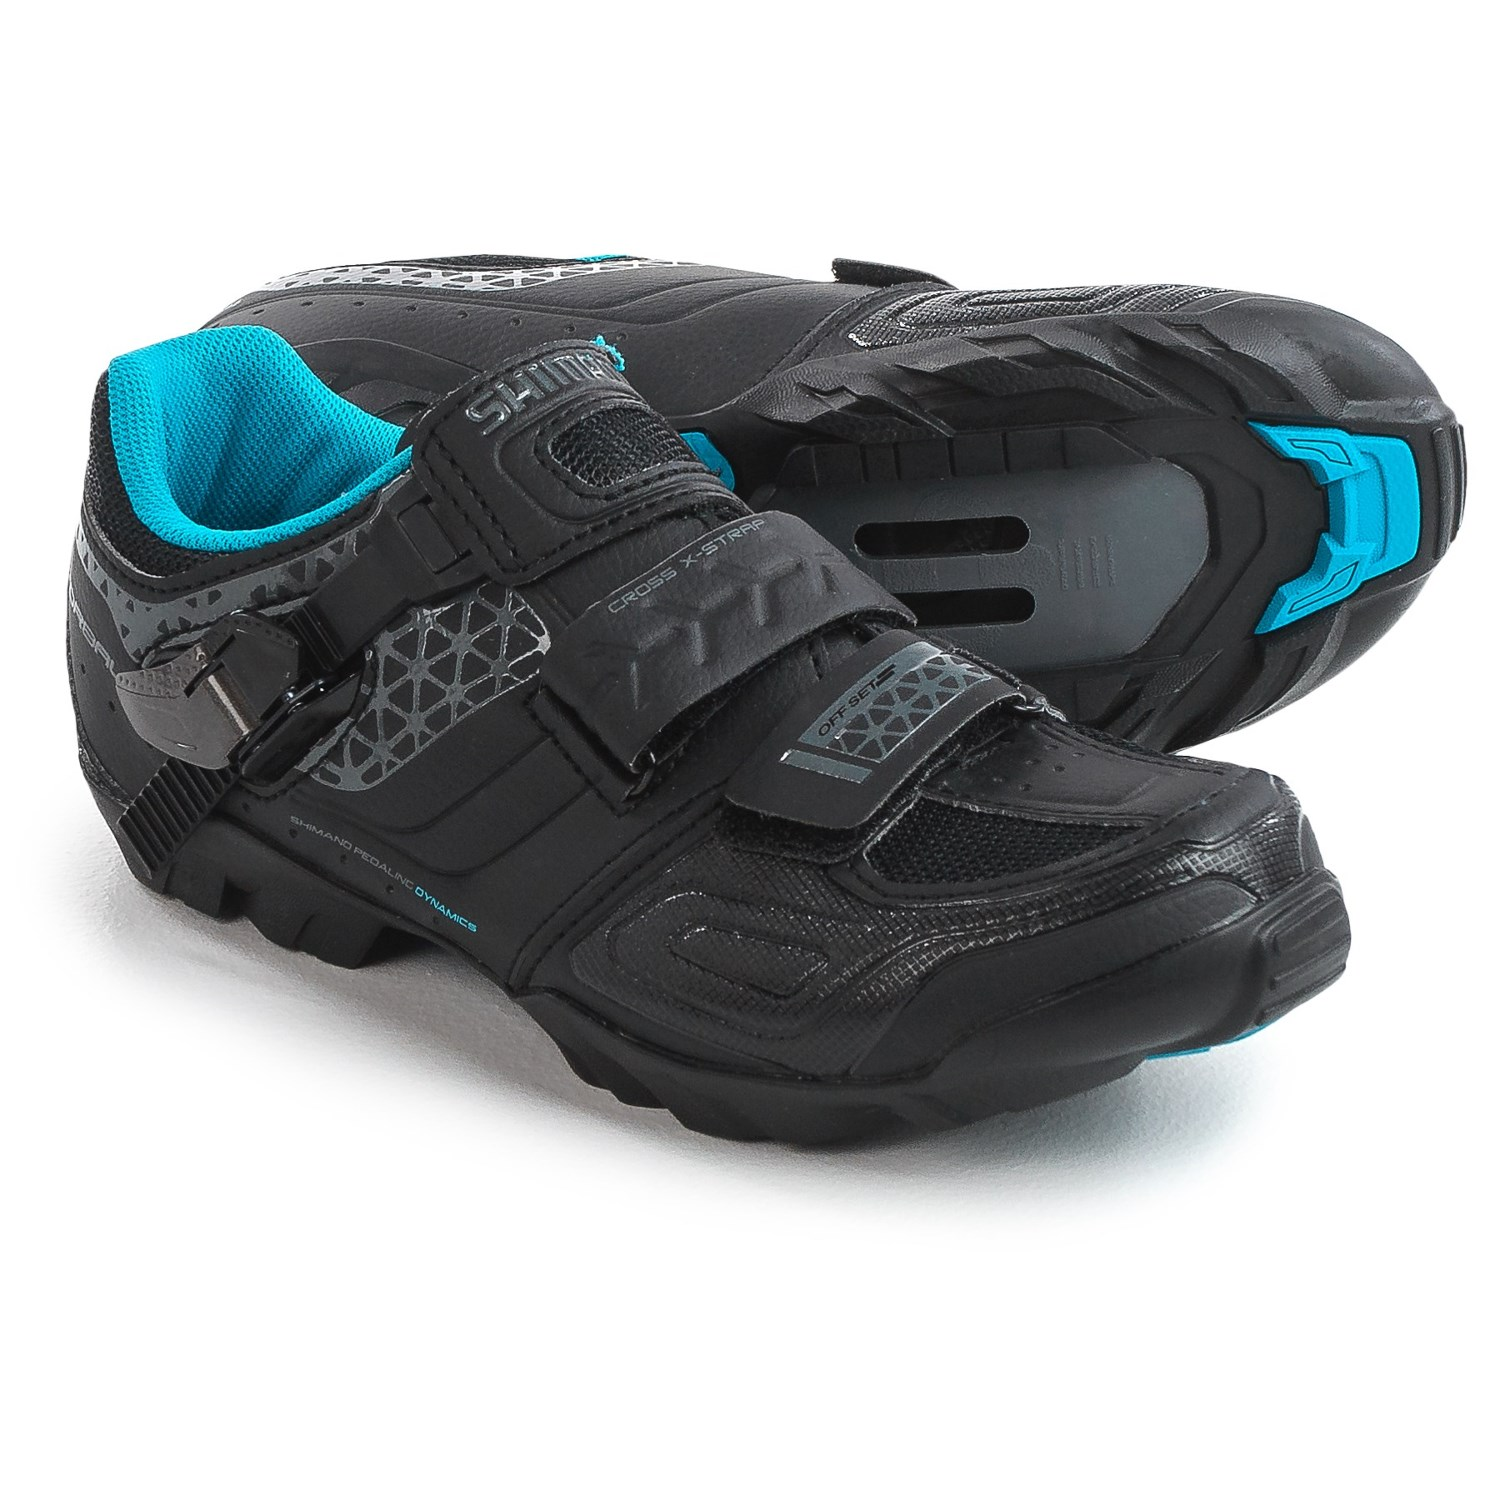 Best Spd Shoes For Road Bike